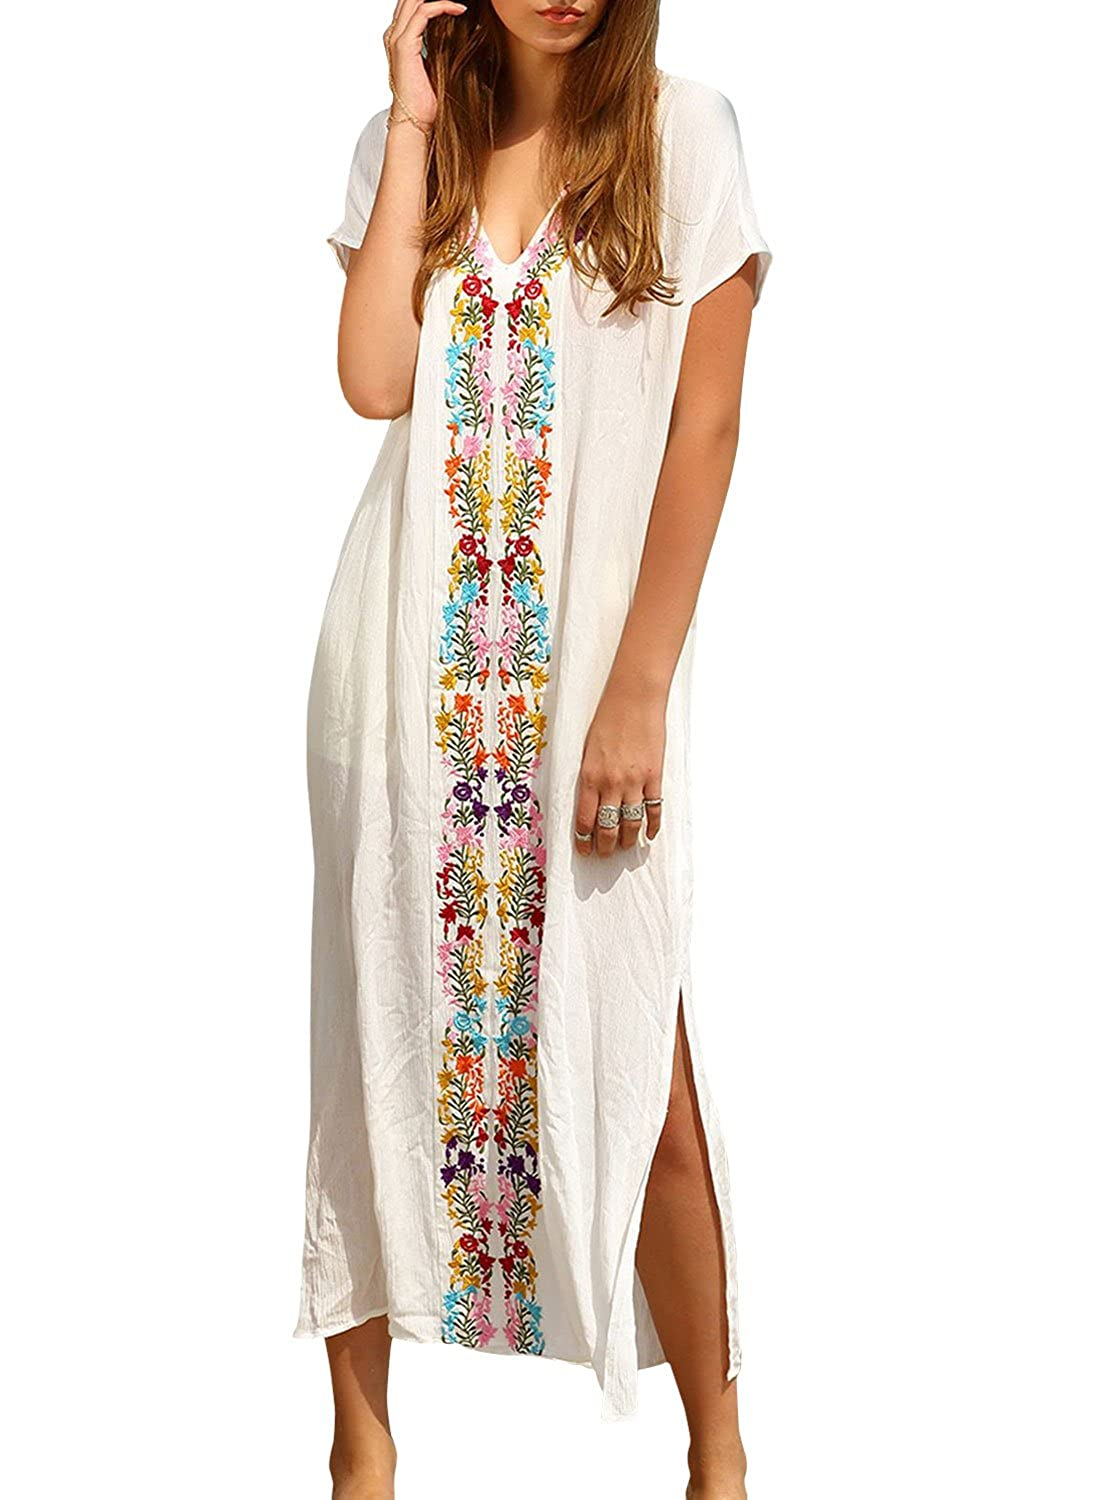 Women s Colorful Cotton Embroidered Turkish Kaftans Beachwear Bikini Cover  up Dress (White) at Amazon Women s Clothing store  a13cbb950